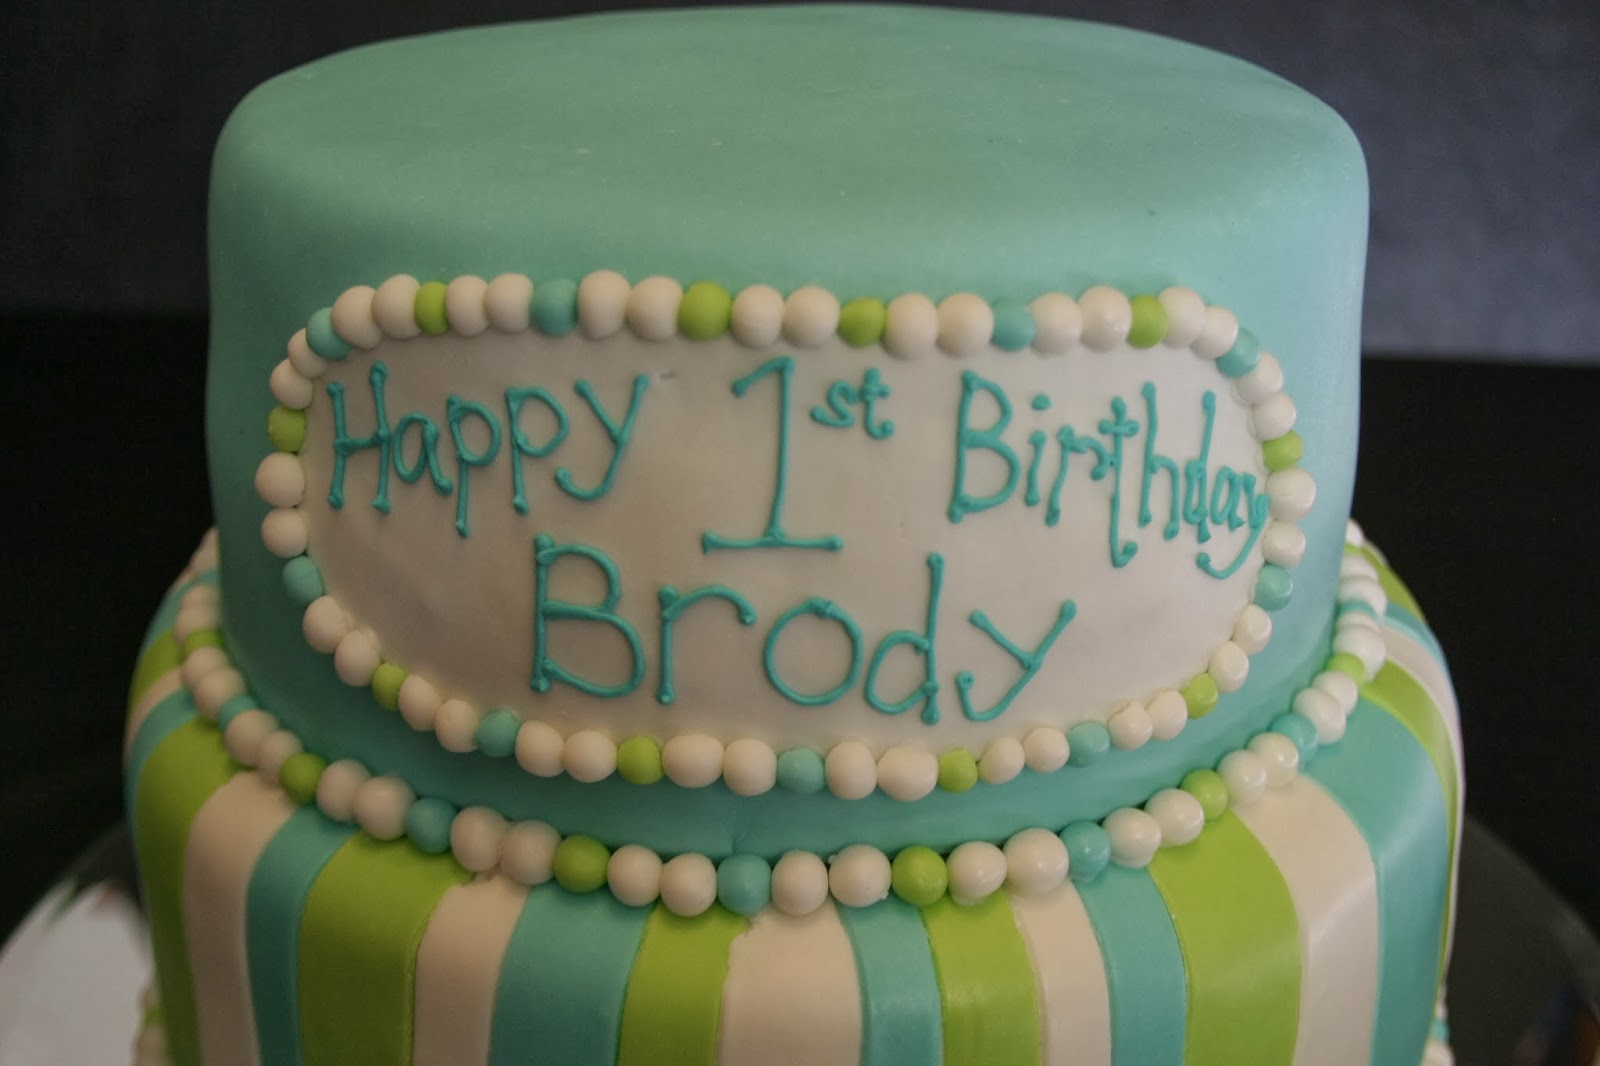 All Tiered Up Brody S Birthday Cake